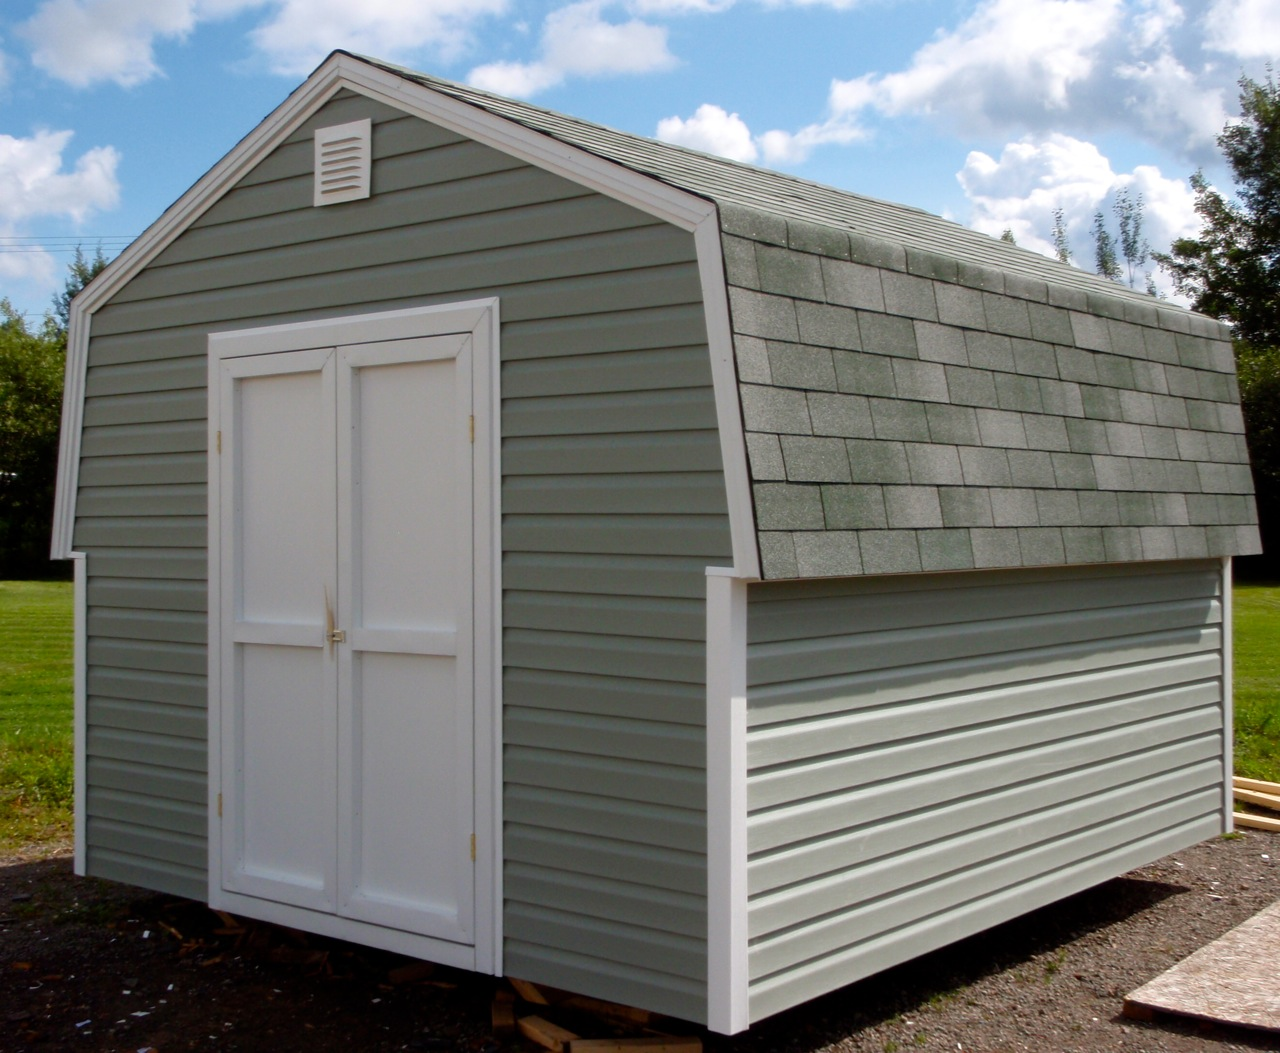 Shed Roof Garage Ideas House Plans 34080